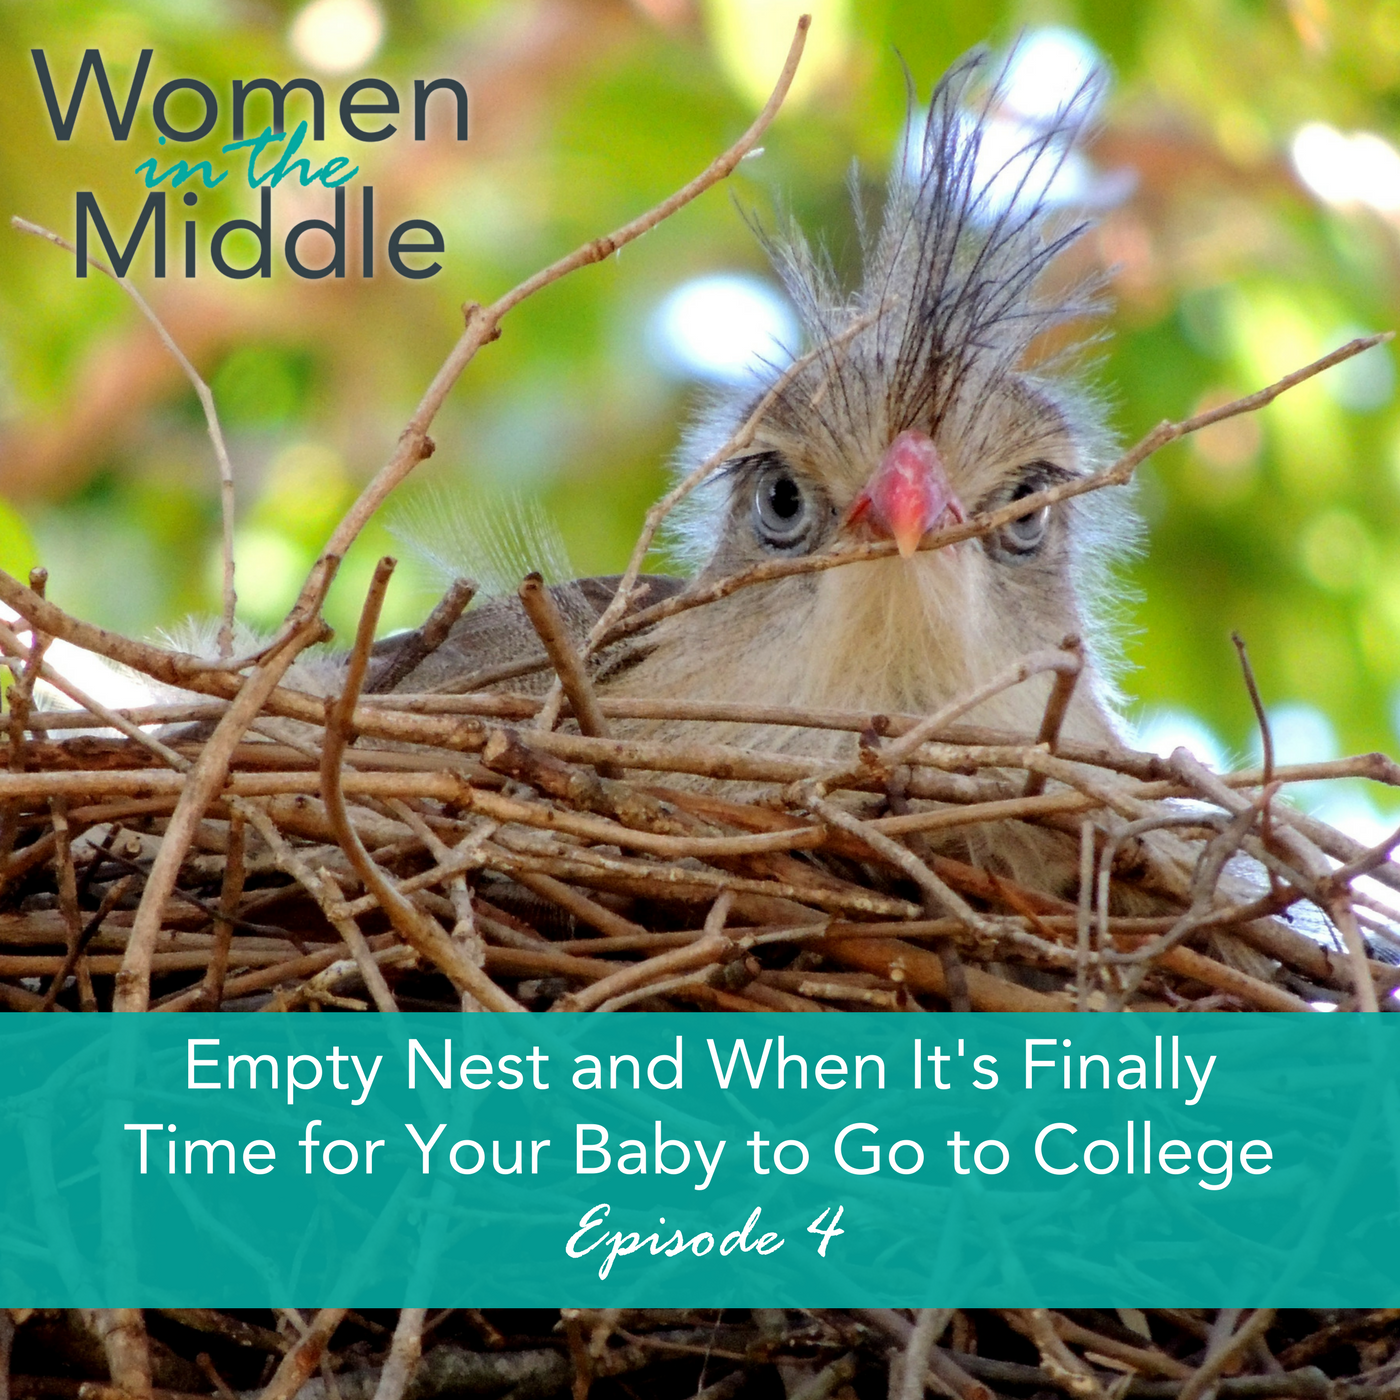 midlife women podcast